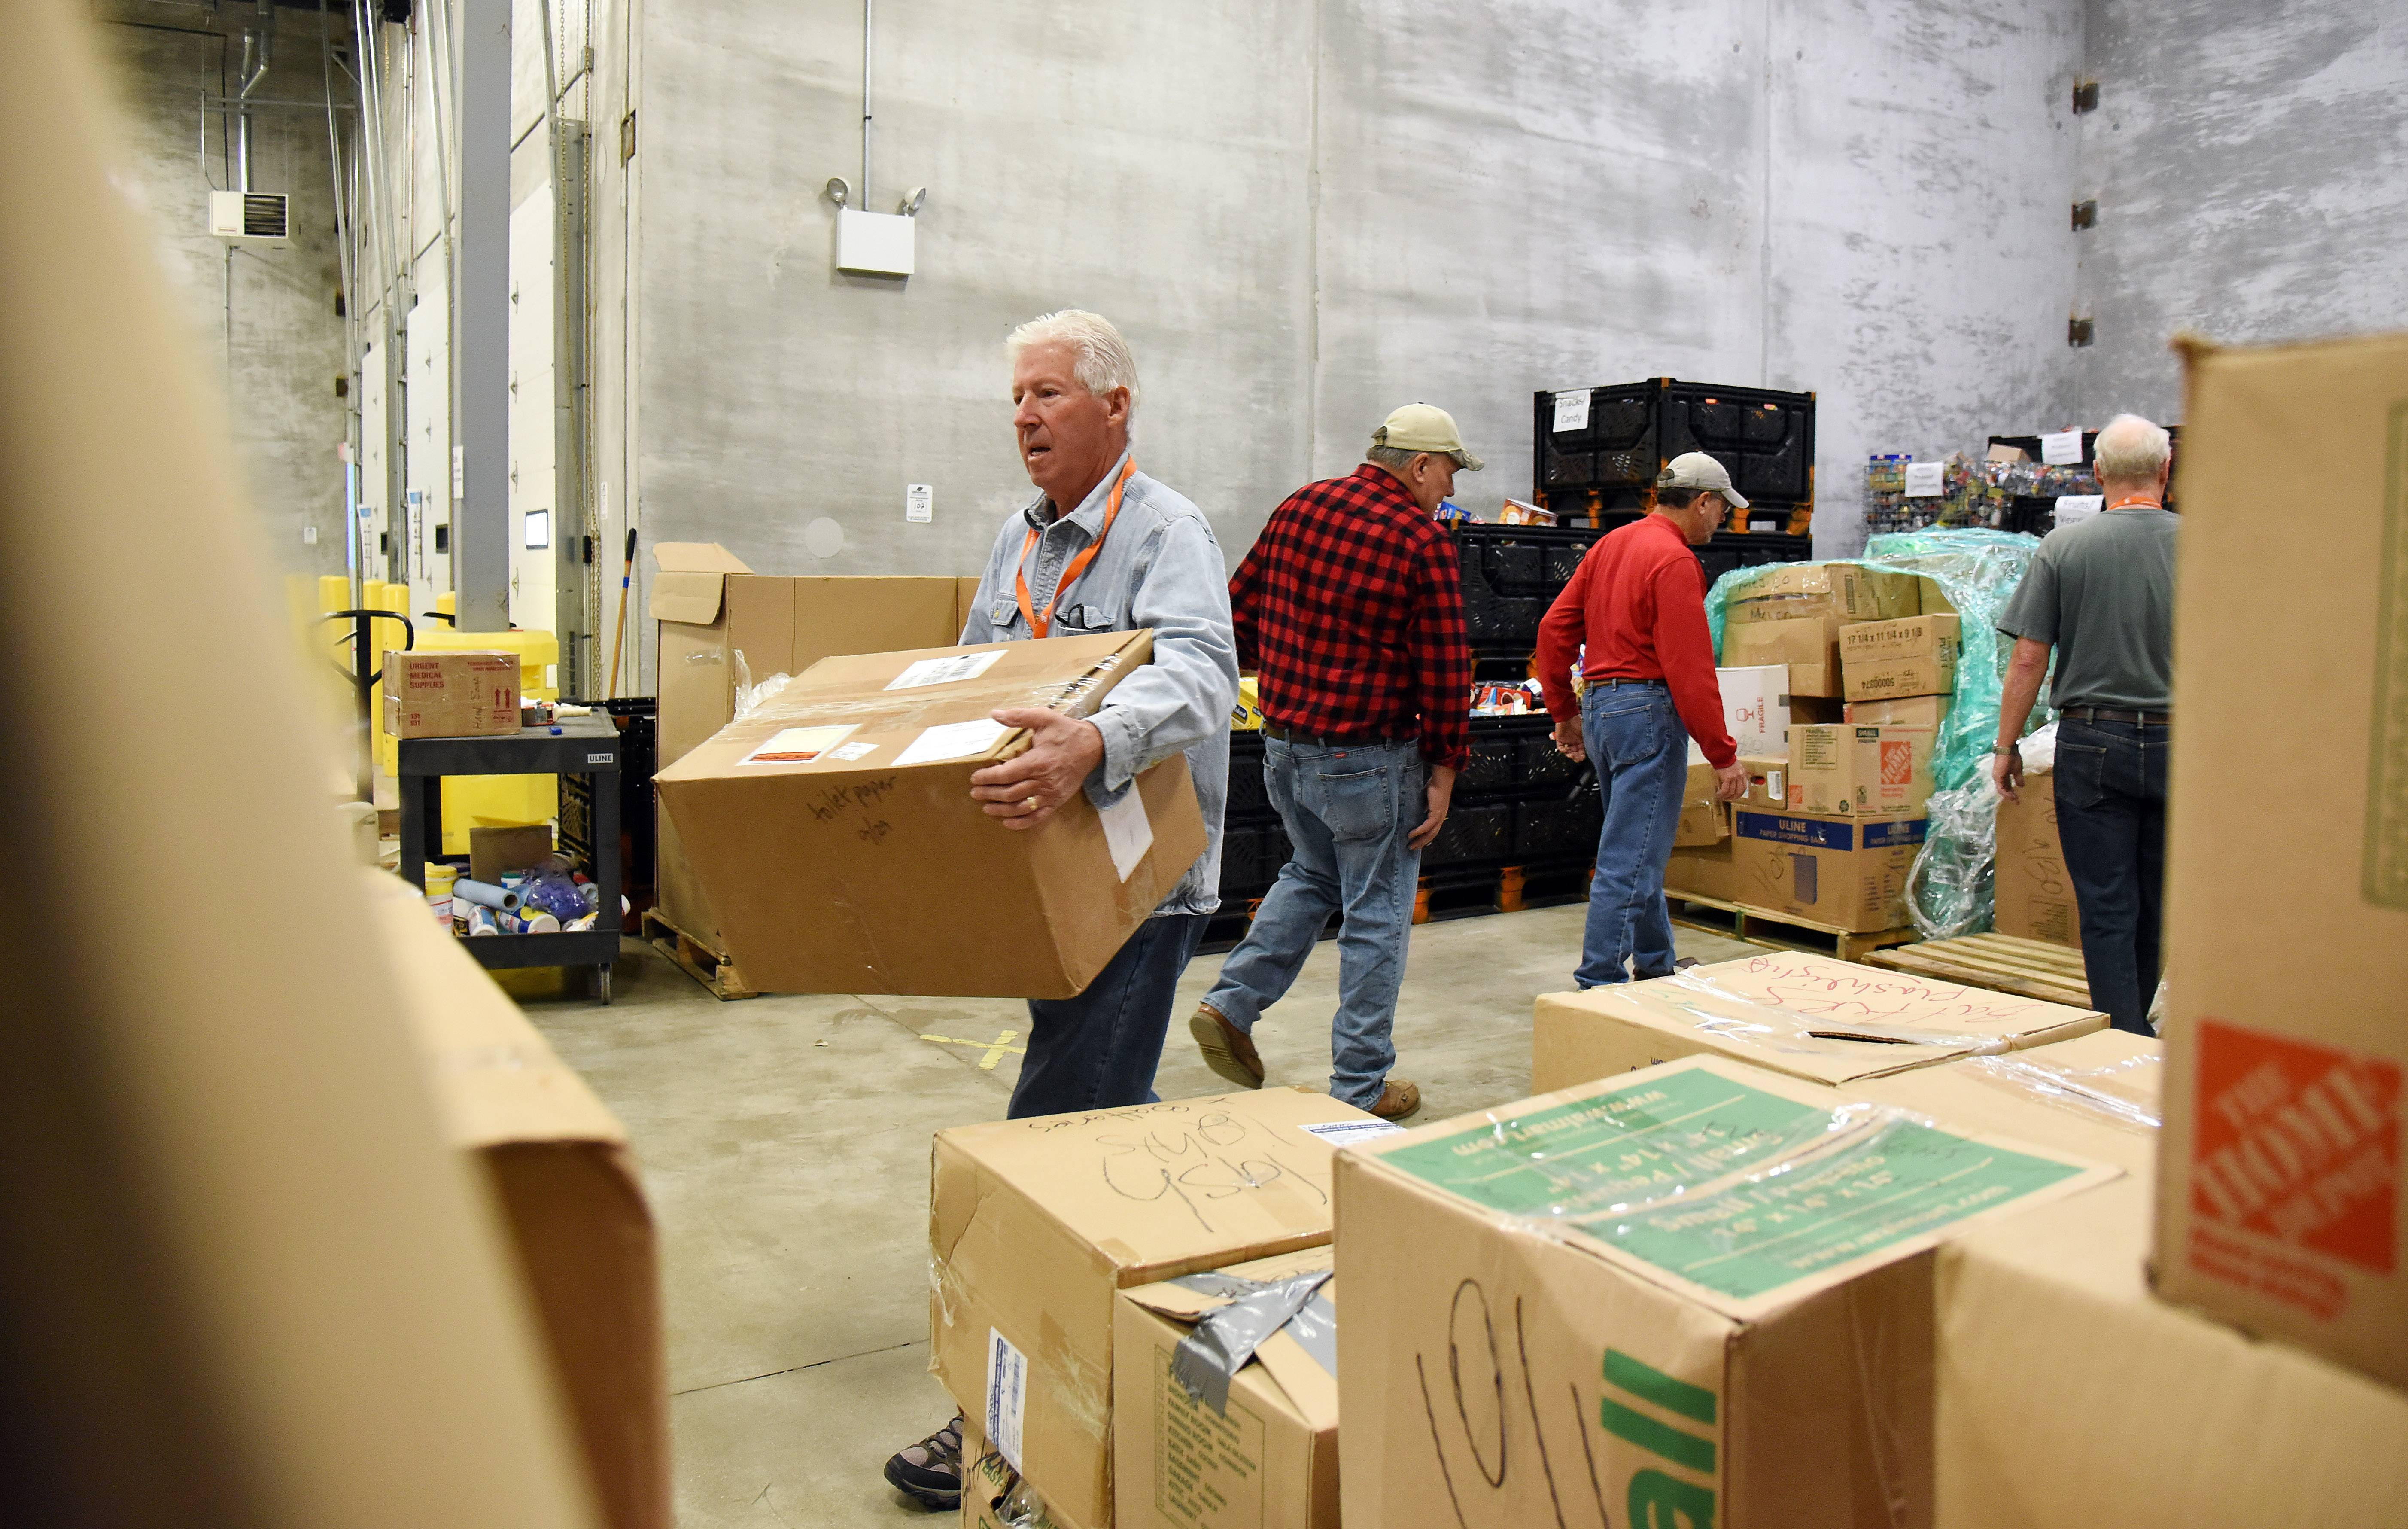 Northern Illinois Food Bank volunteer Gary Snyder of St. Charles moves boxes of donated materials to be delivered to hurricane victims in Puerto Rico.